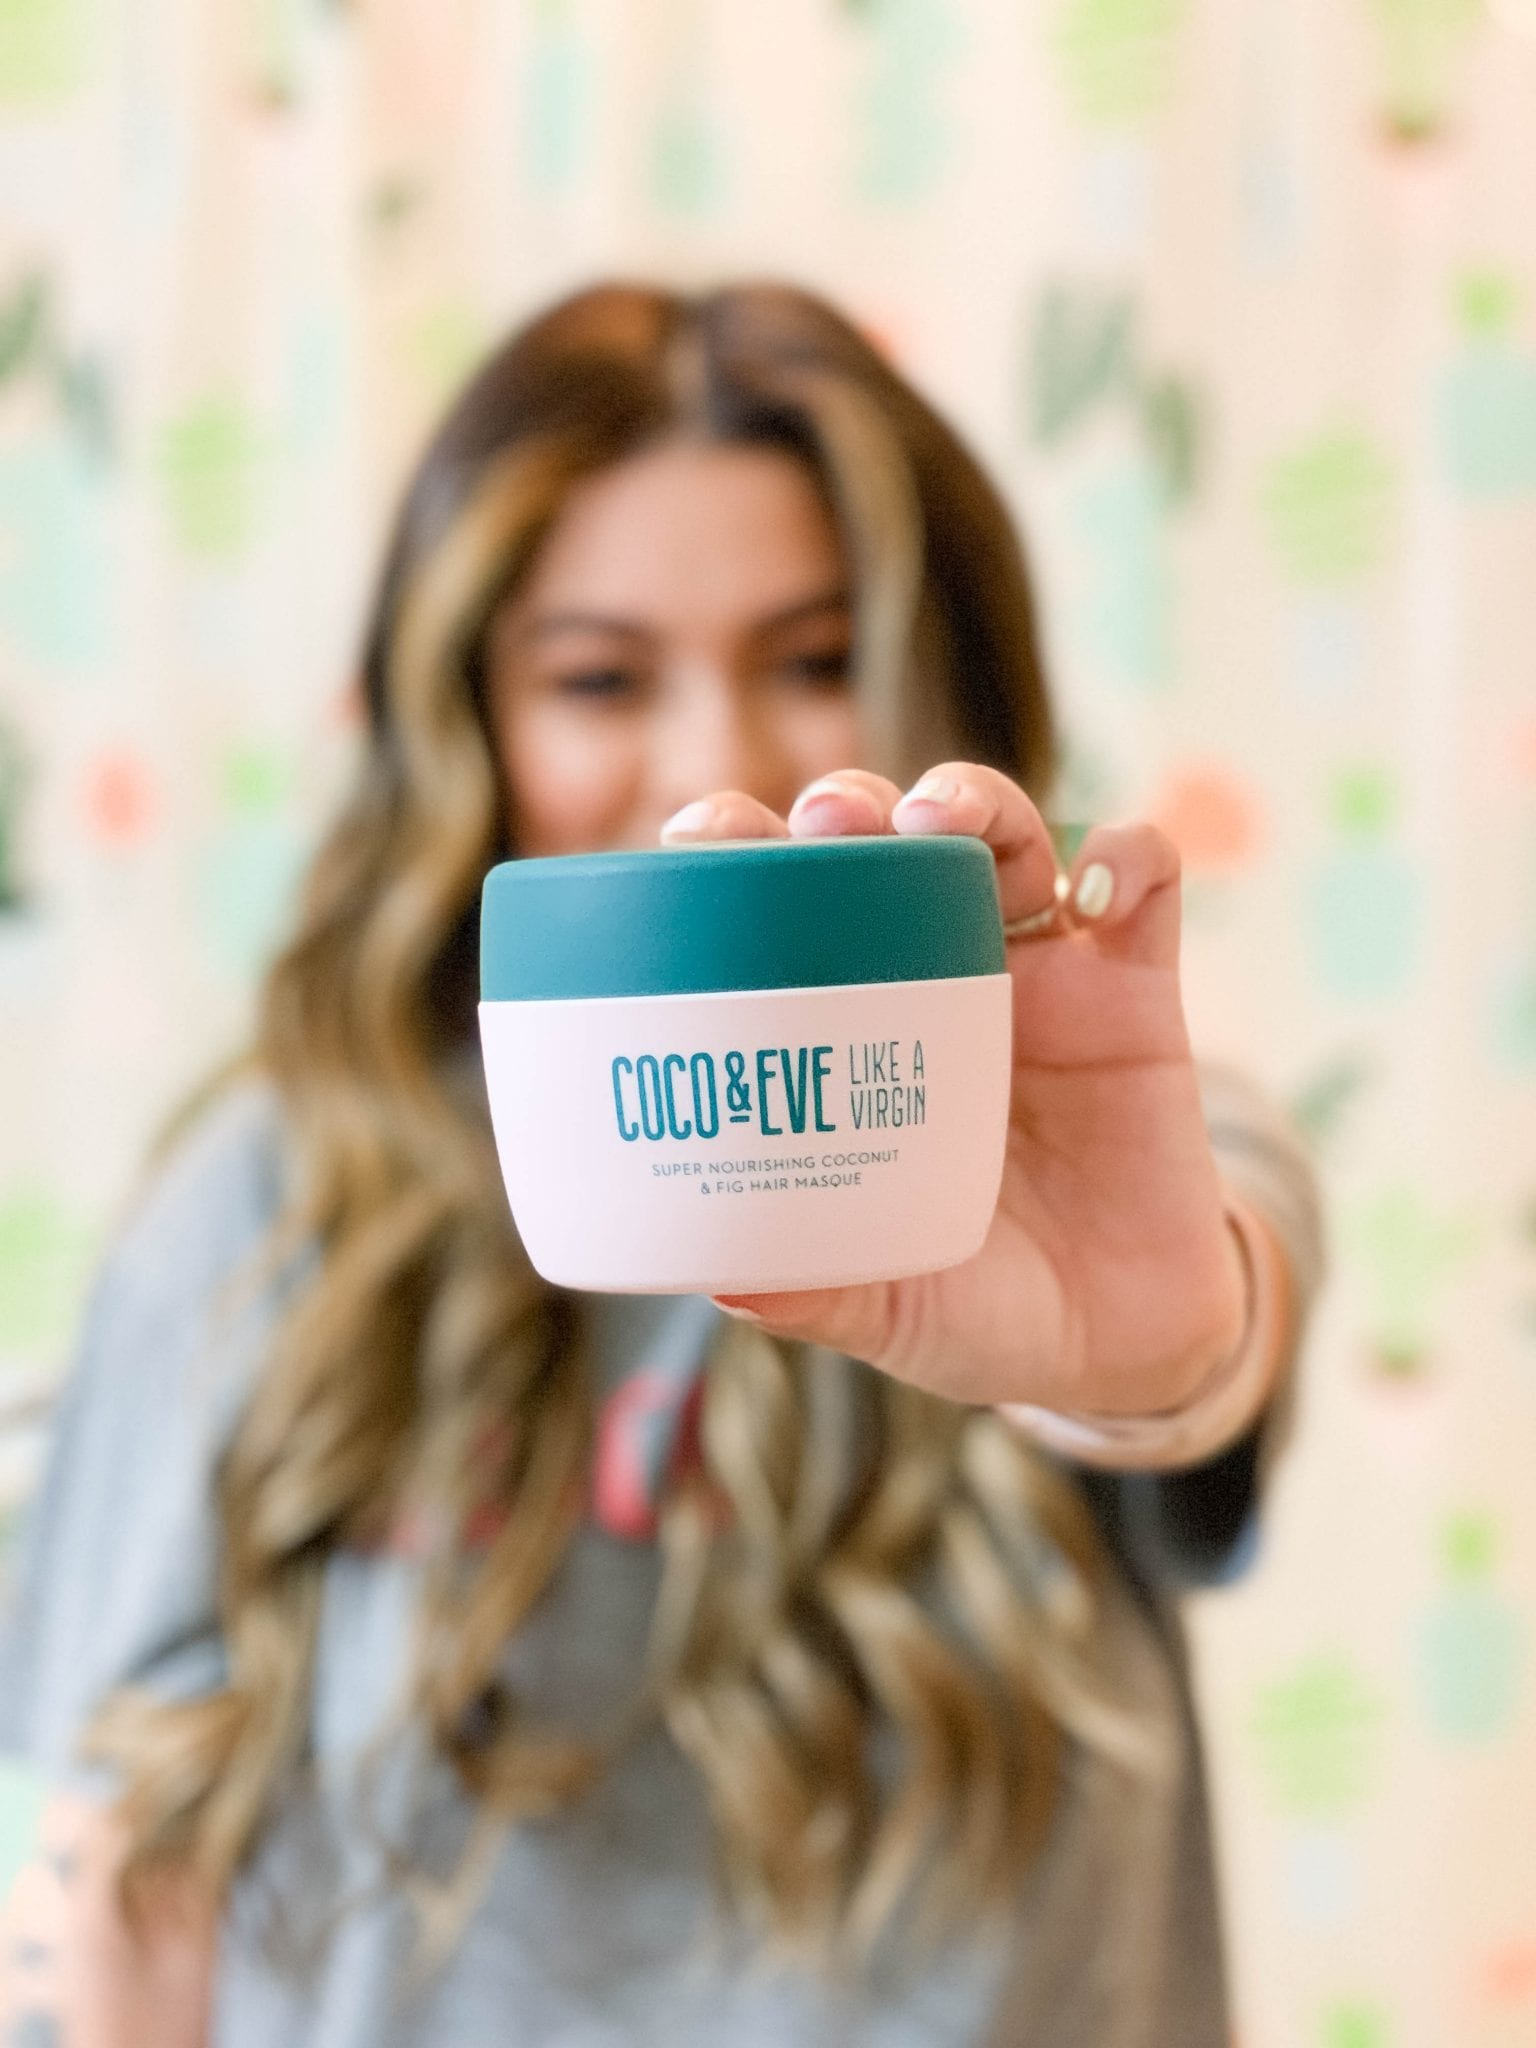 Coco & Eve a Must-Have Hair Mask